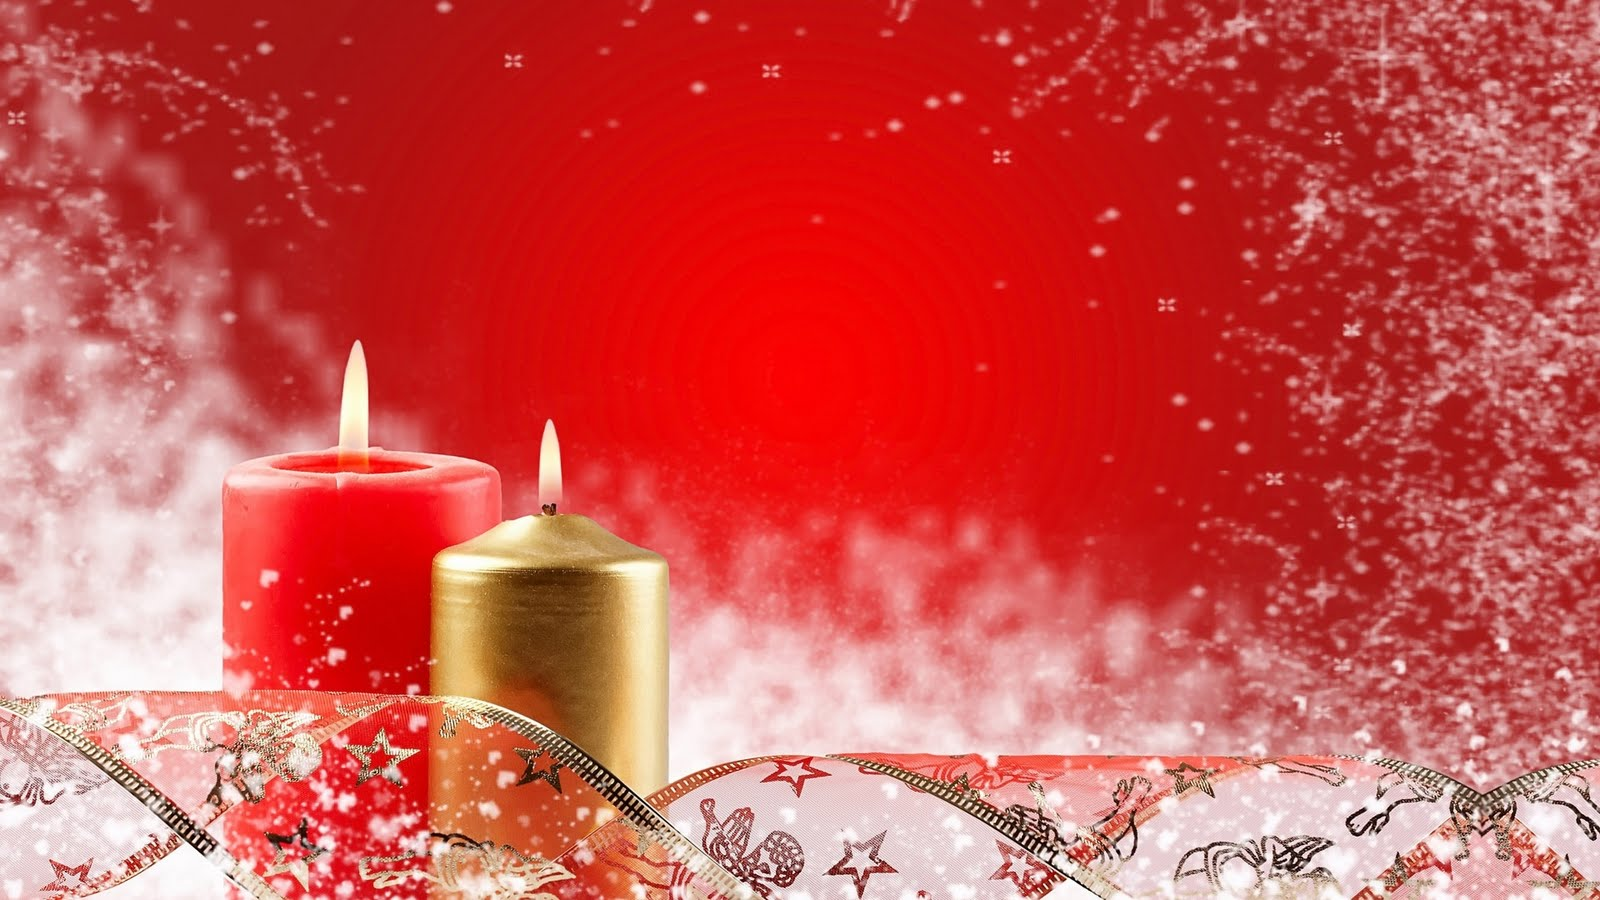 Free 2011 Christmas Greeting Cards Free Christmas Wallpapers E Cards